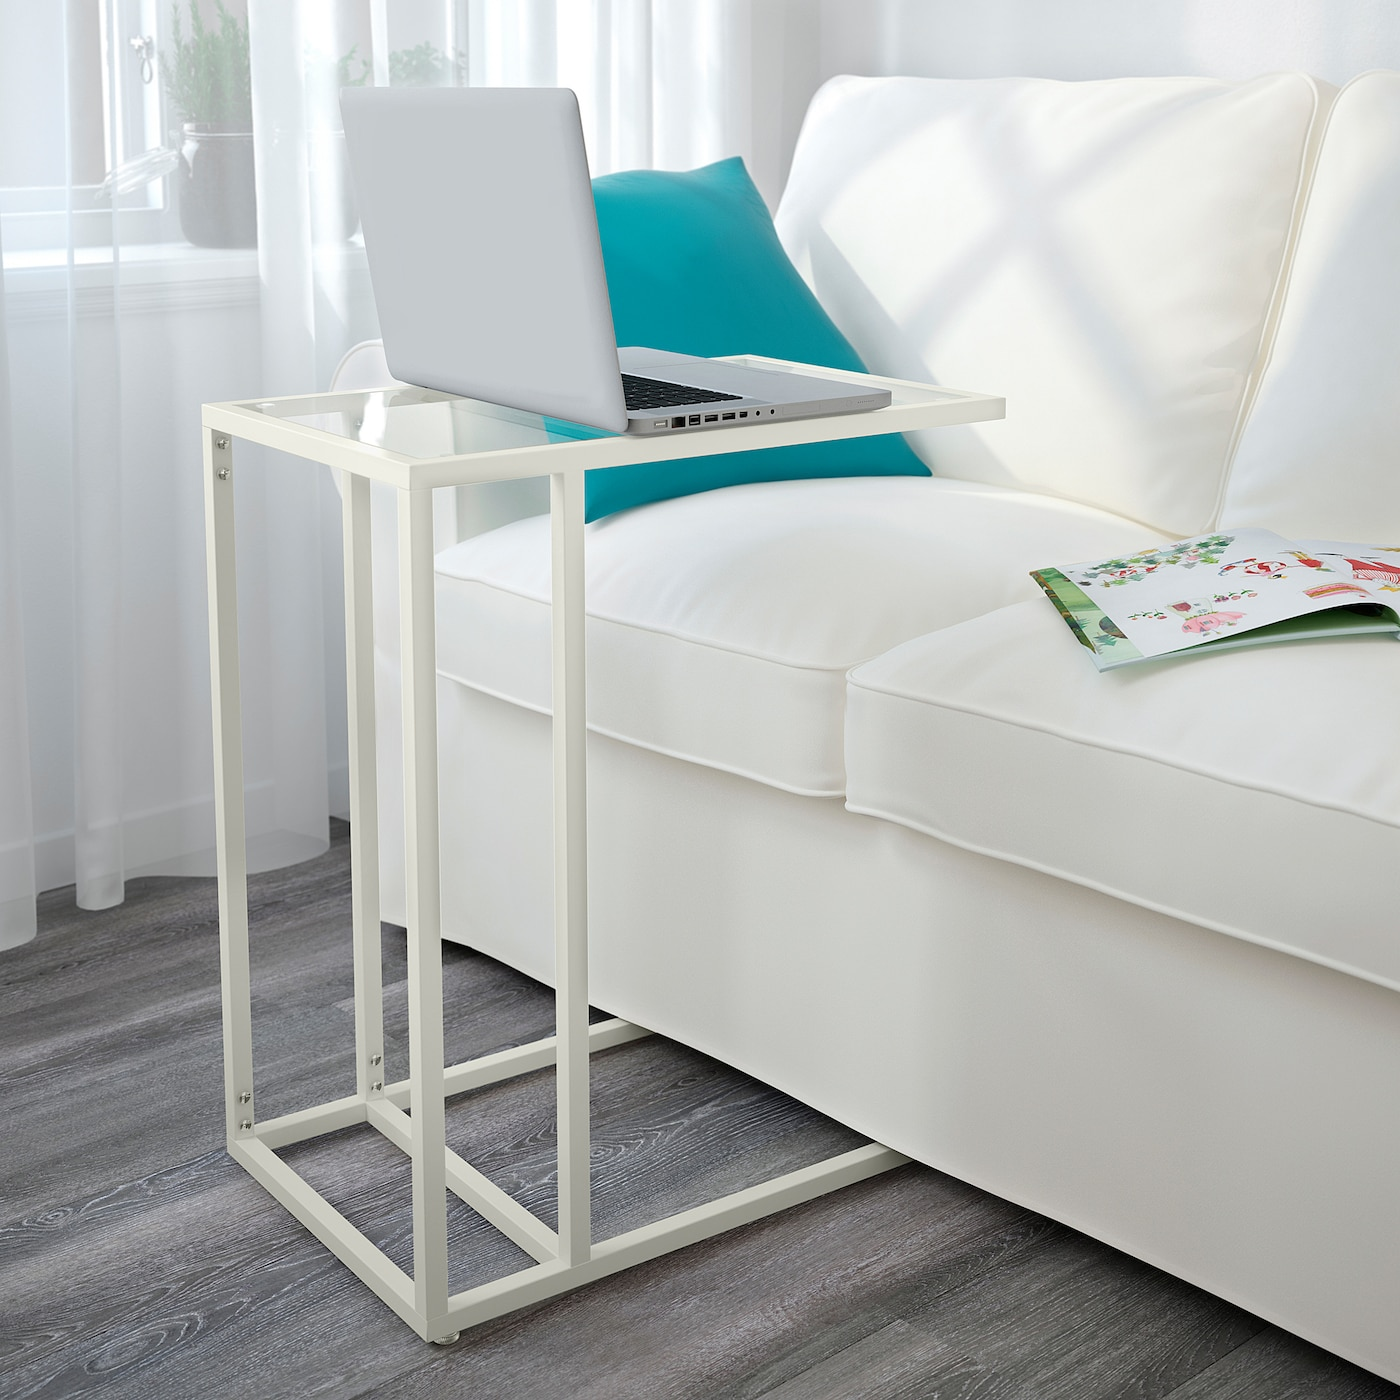 laptop stand for bed ikea